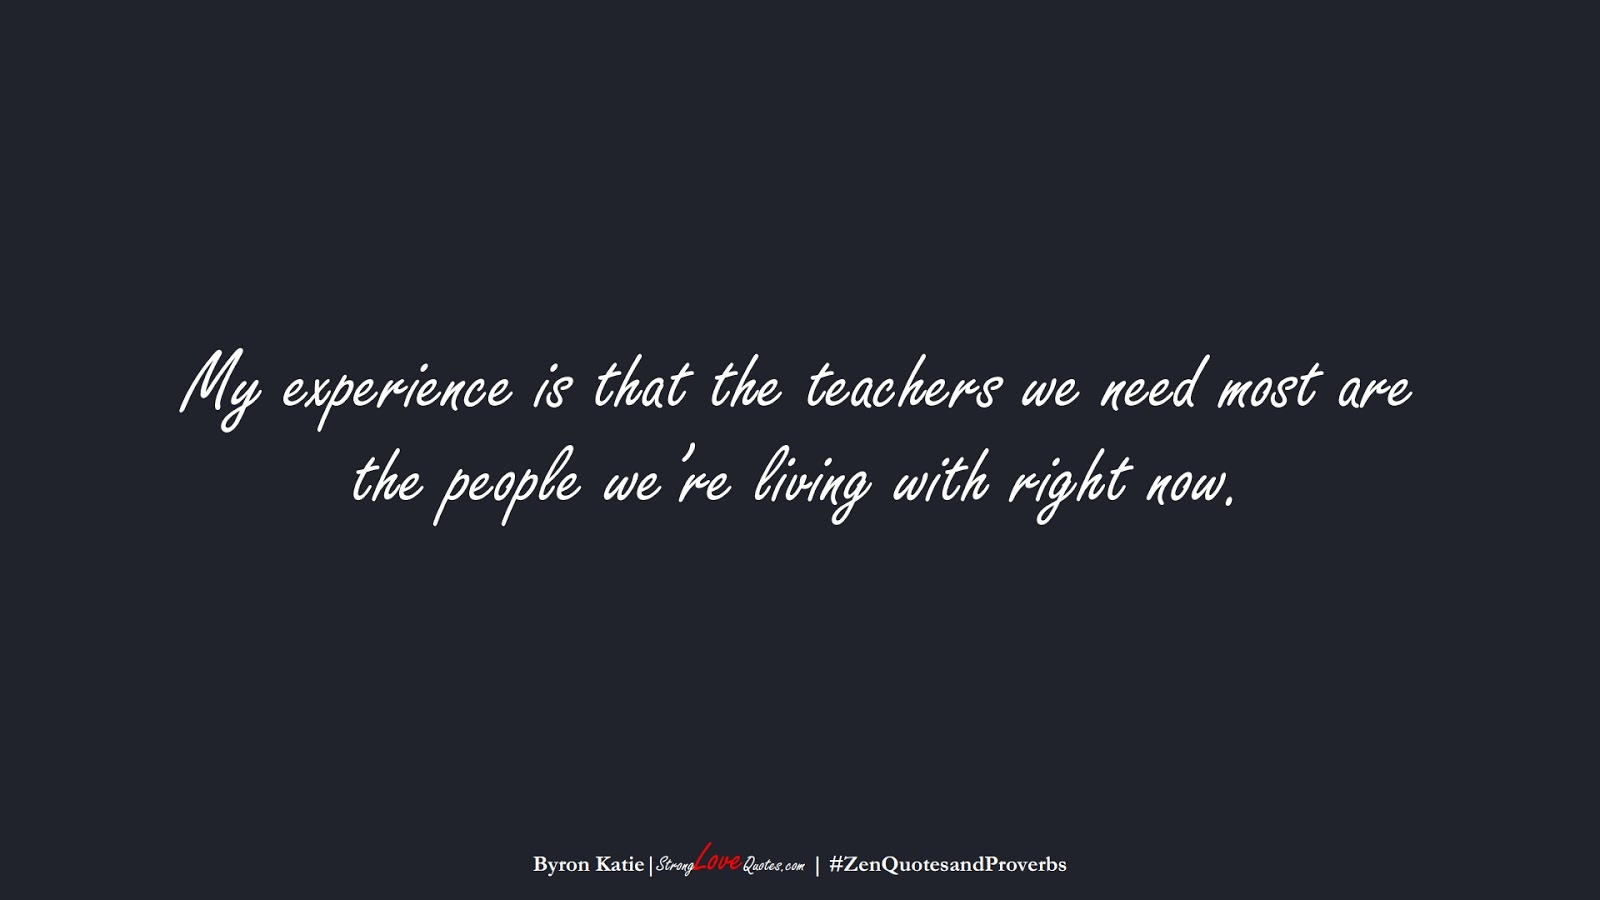 My experience is that the teachers we need most are the people we're living with right now. (Byron Katie);  #ZenQuotesandProverbs